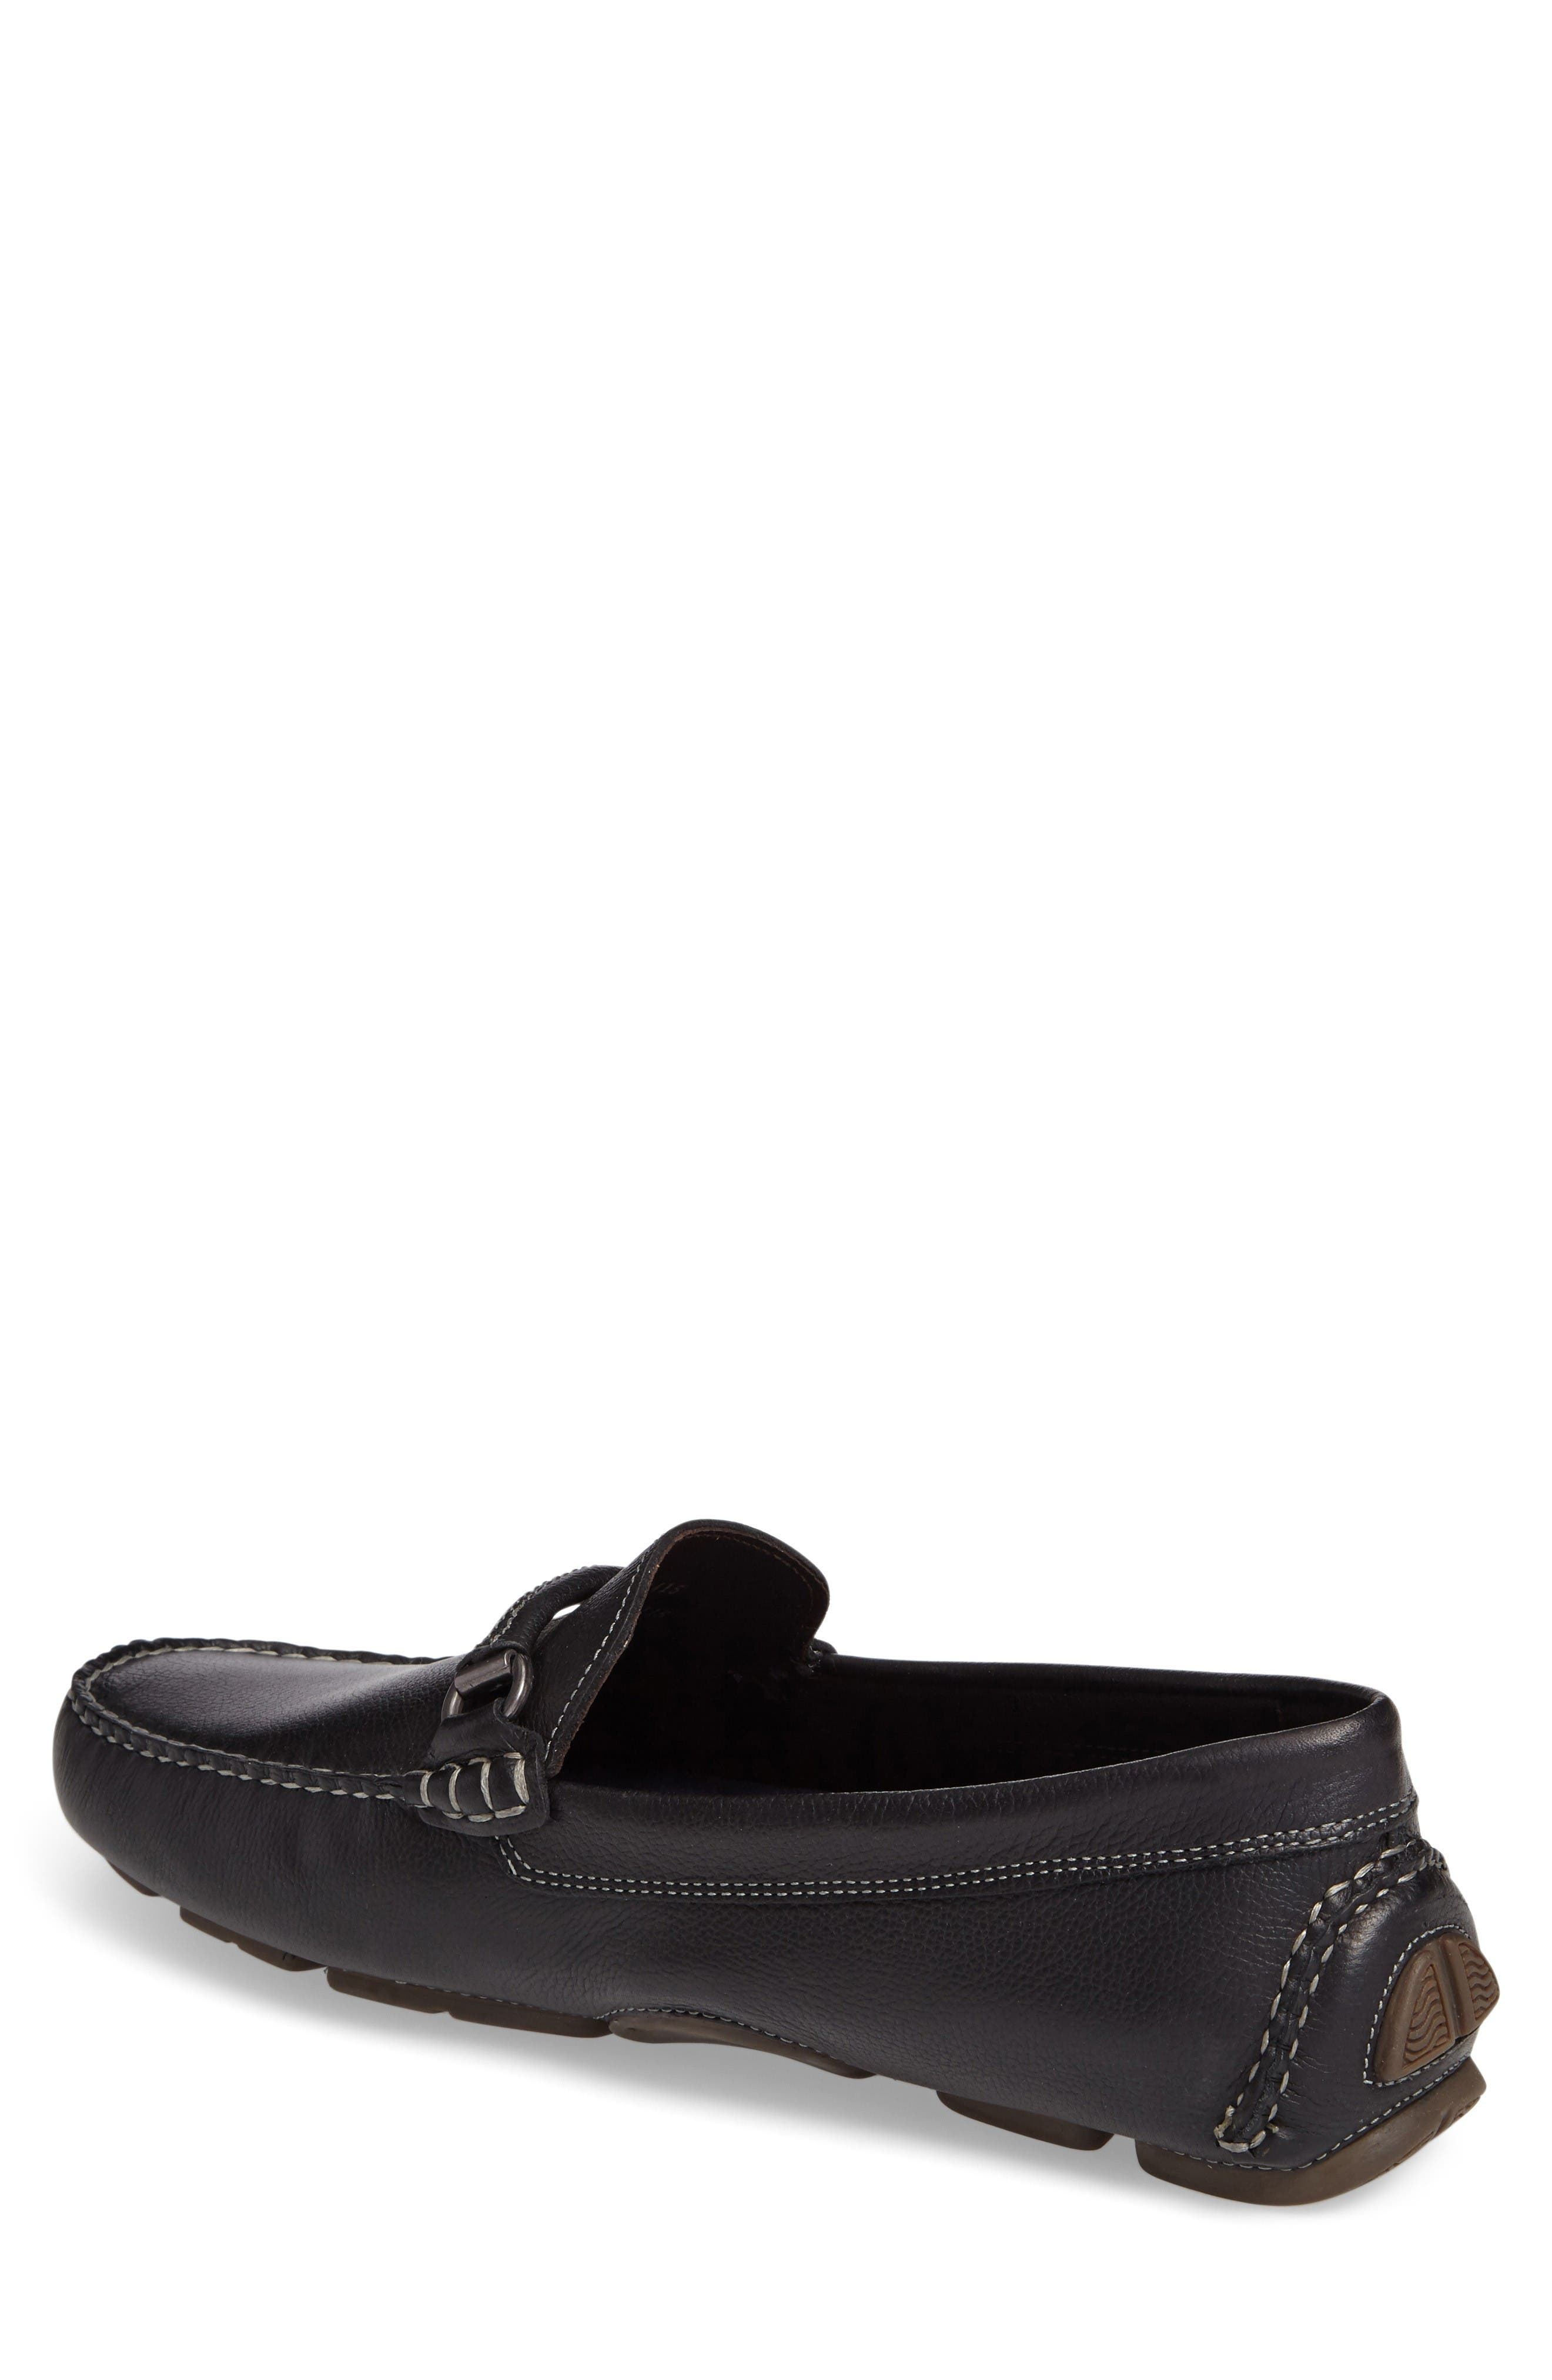 Gibson Bit Driving Loafer,                             Alternate thumbnail 2, color,                             Black Leather